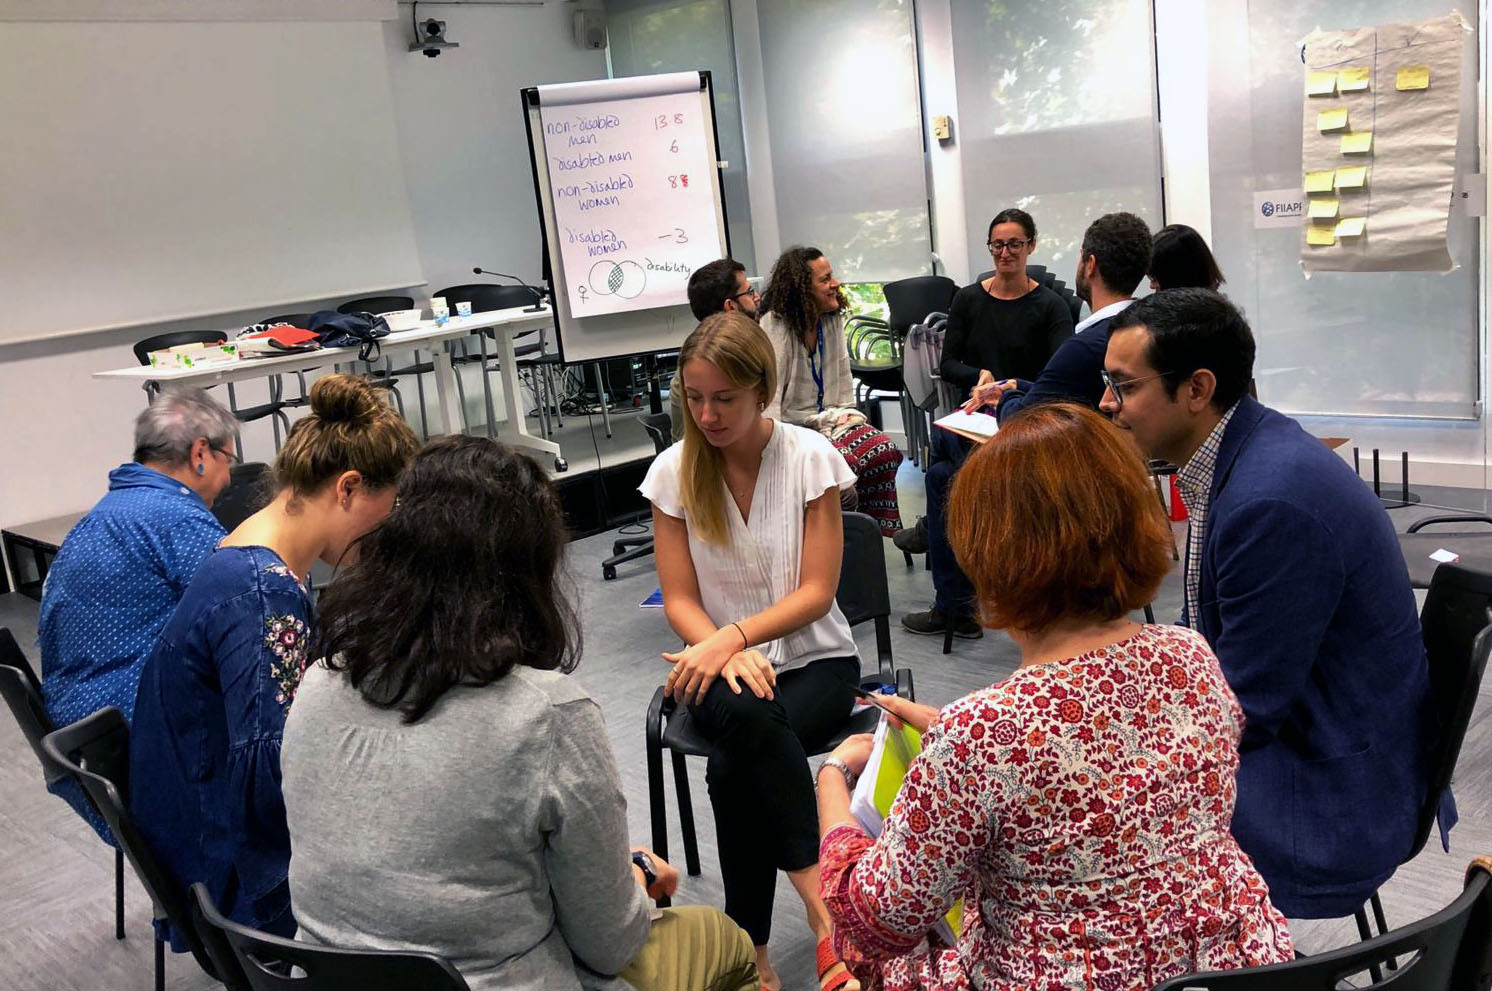 Participants of the secongd DET in Madrid working in groups